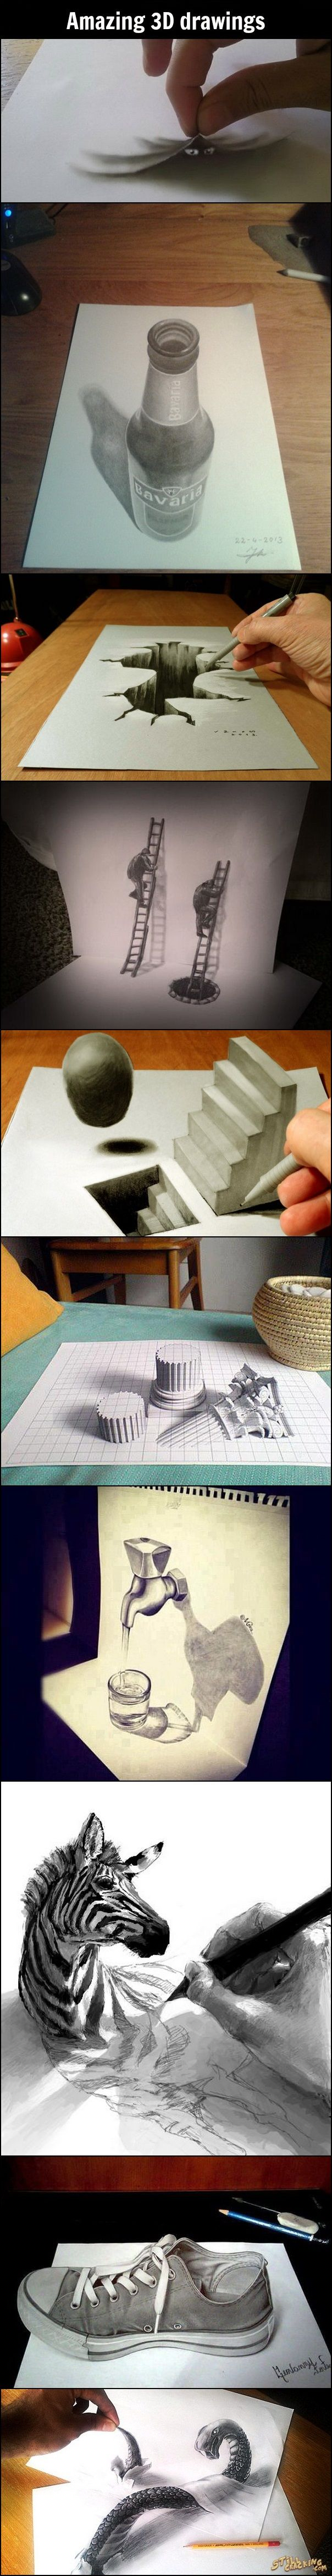 Still+Cracking+»+Its+Your+Time+To+Laugh!Amazing+3D+Drawings+-+Still+Cracking